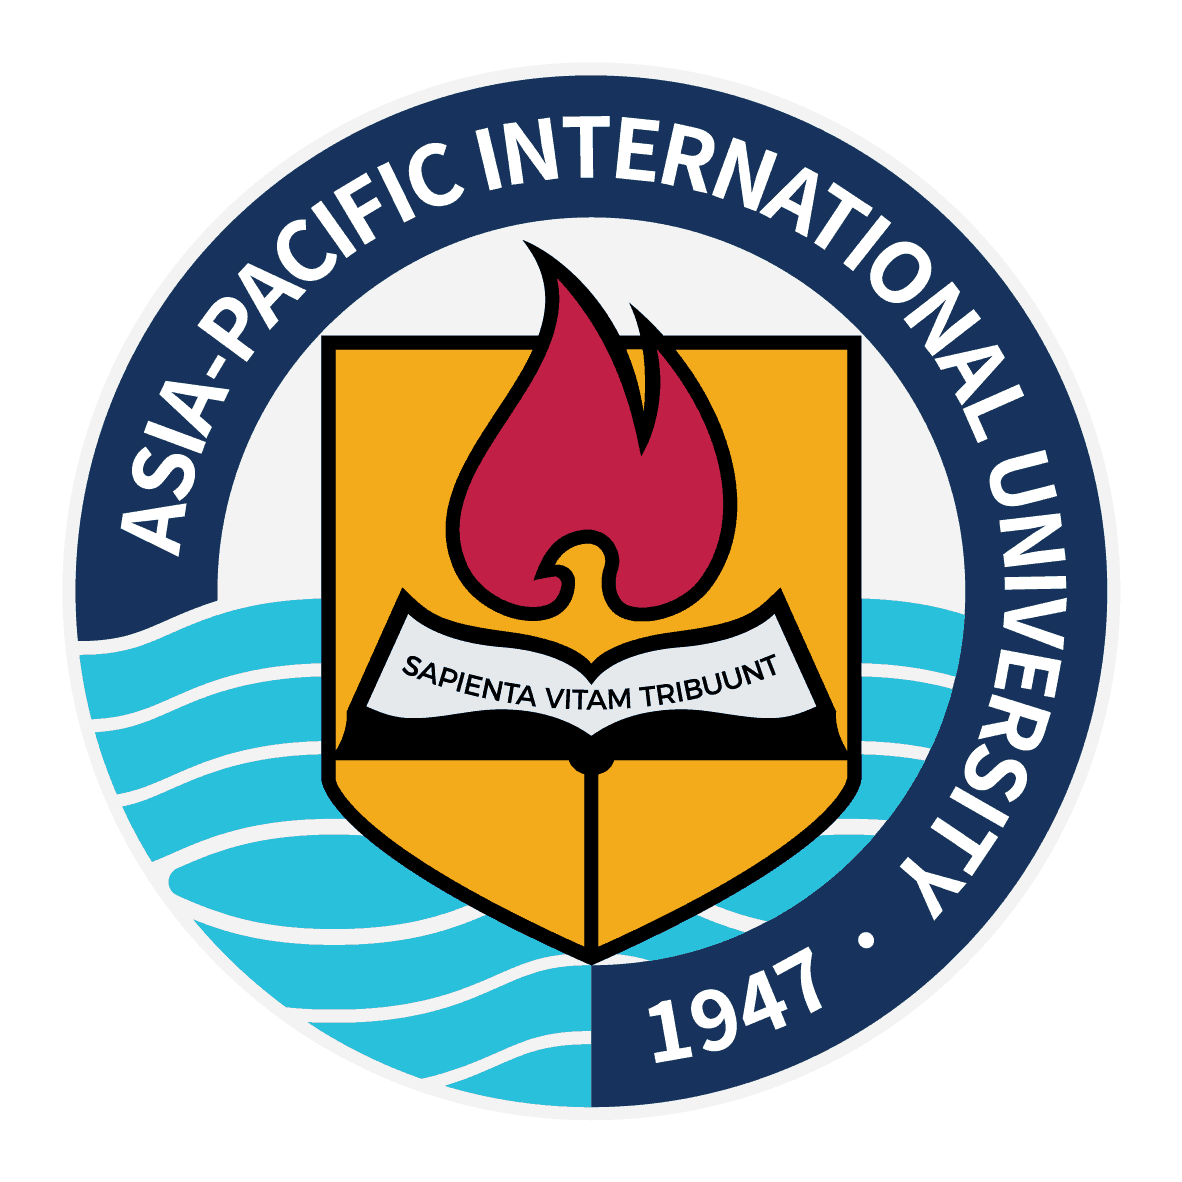 asia-pacific-international-university-seal